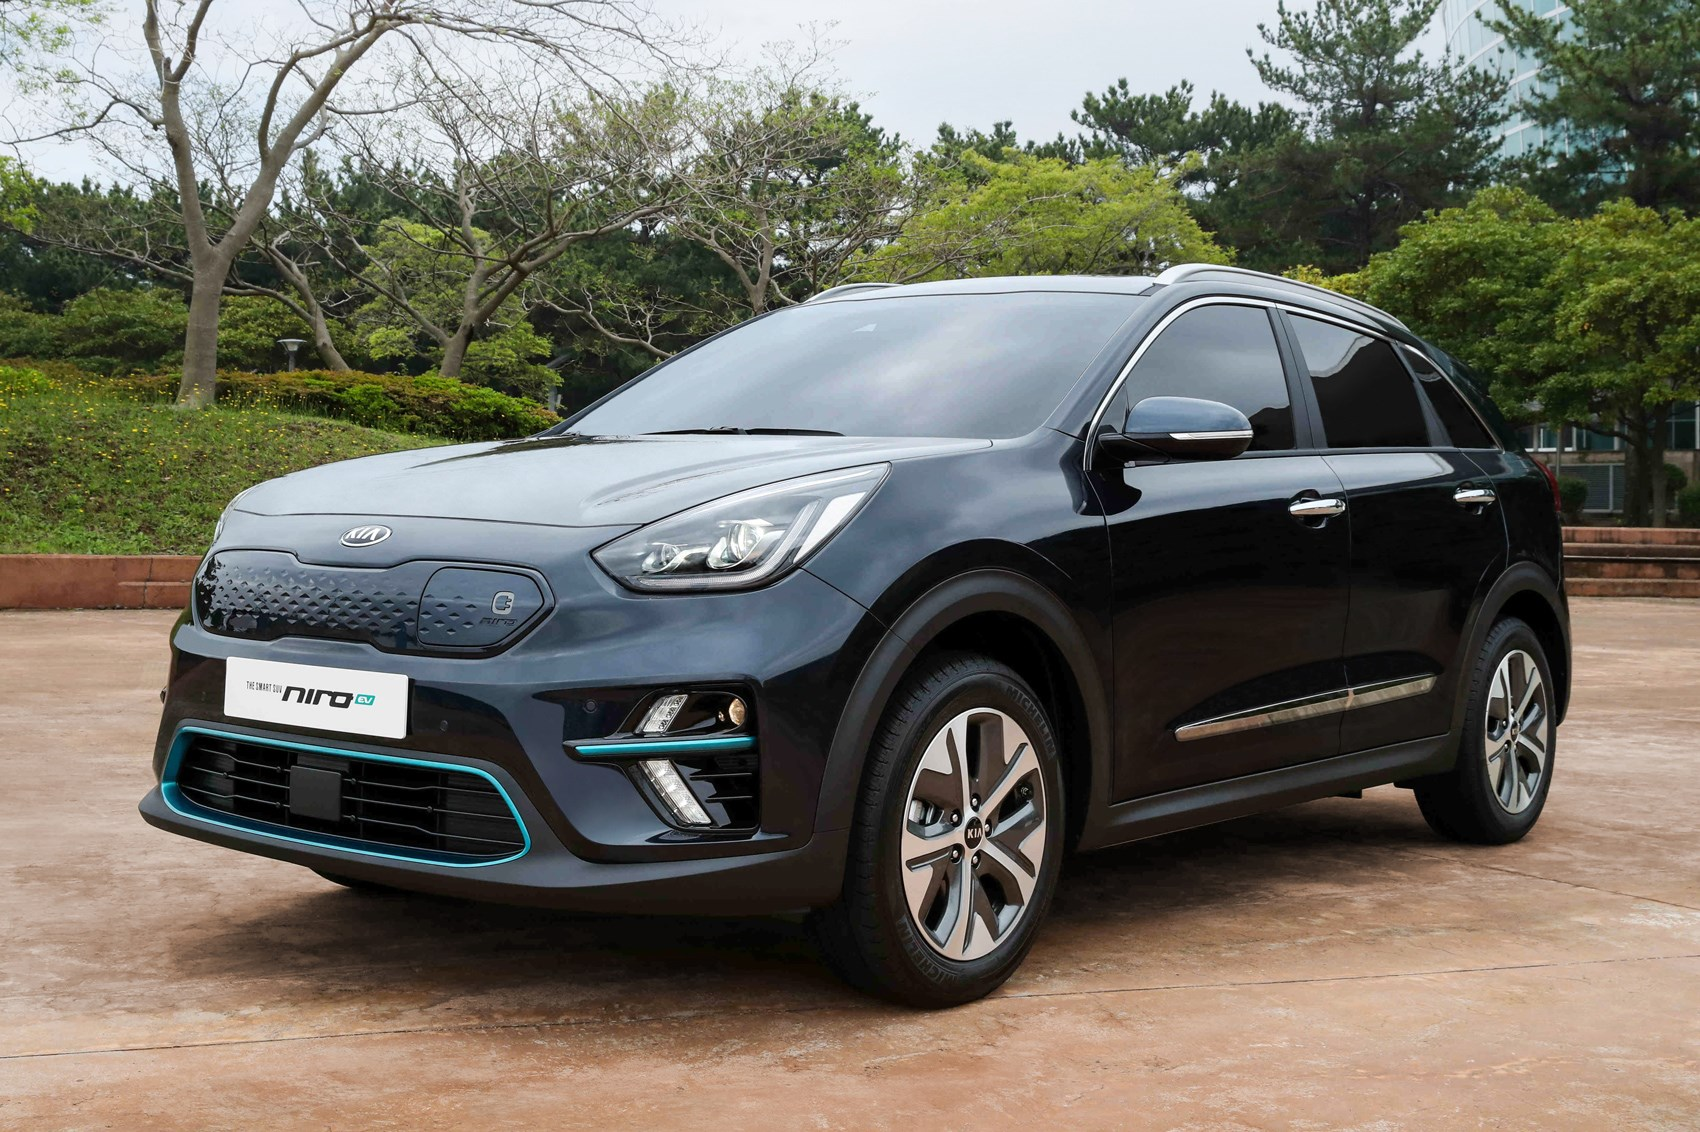 New Kia Niro Ev Specs For All Electric Crossover Revealed